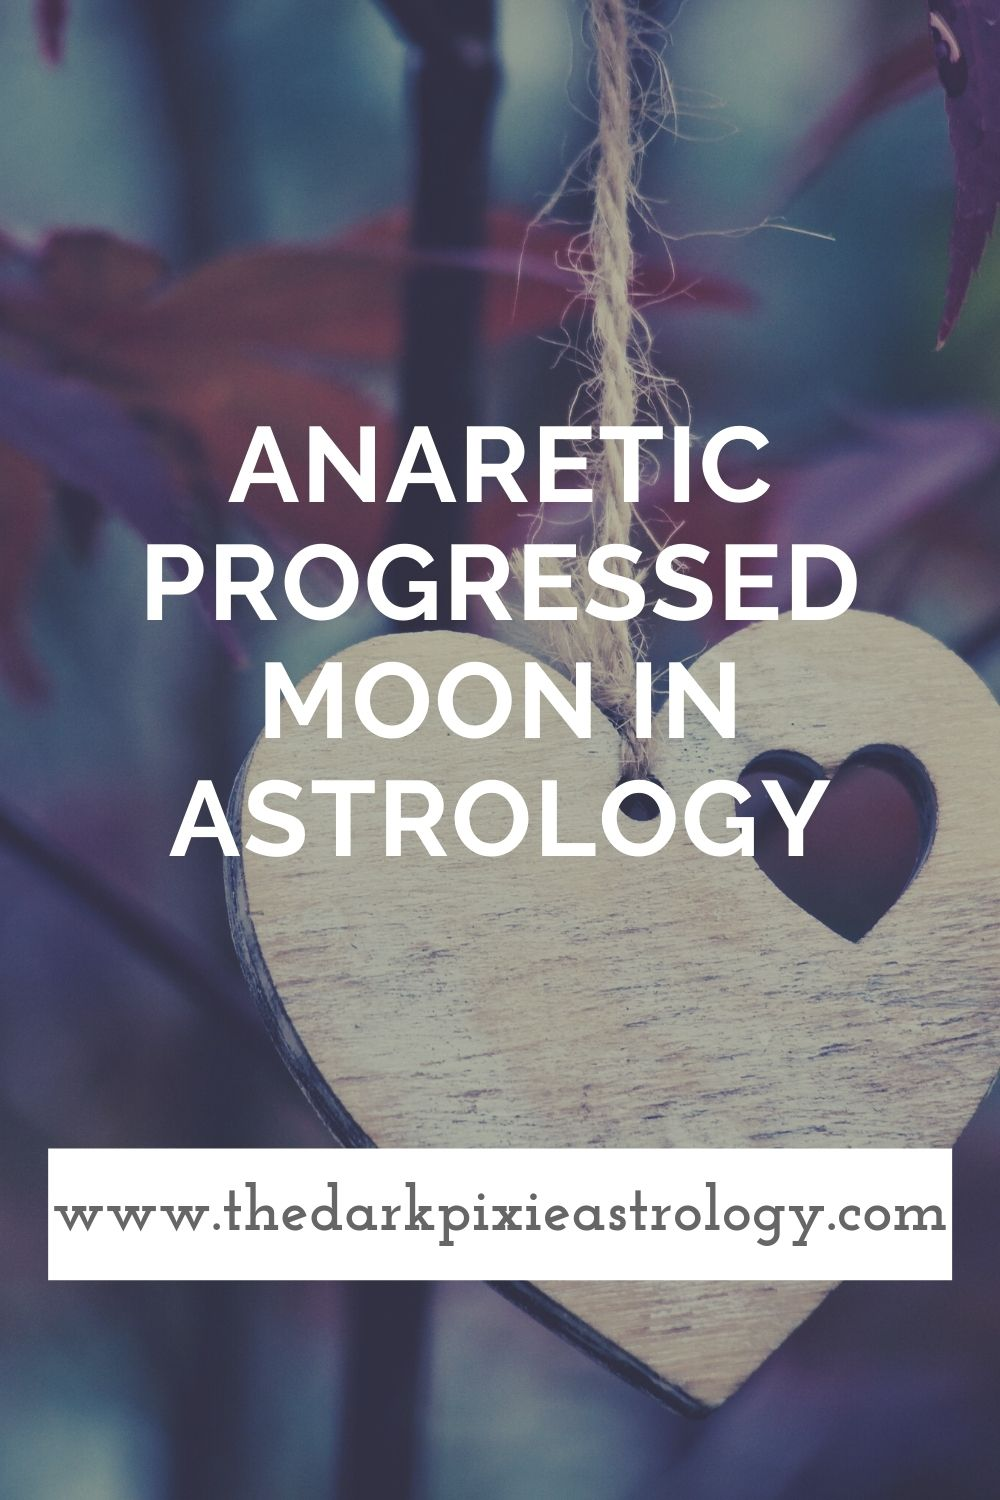 Anaretic Progressed Moon in Astrology - The Dark Pixie Astrology